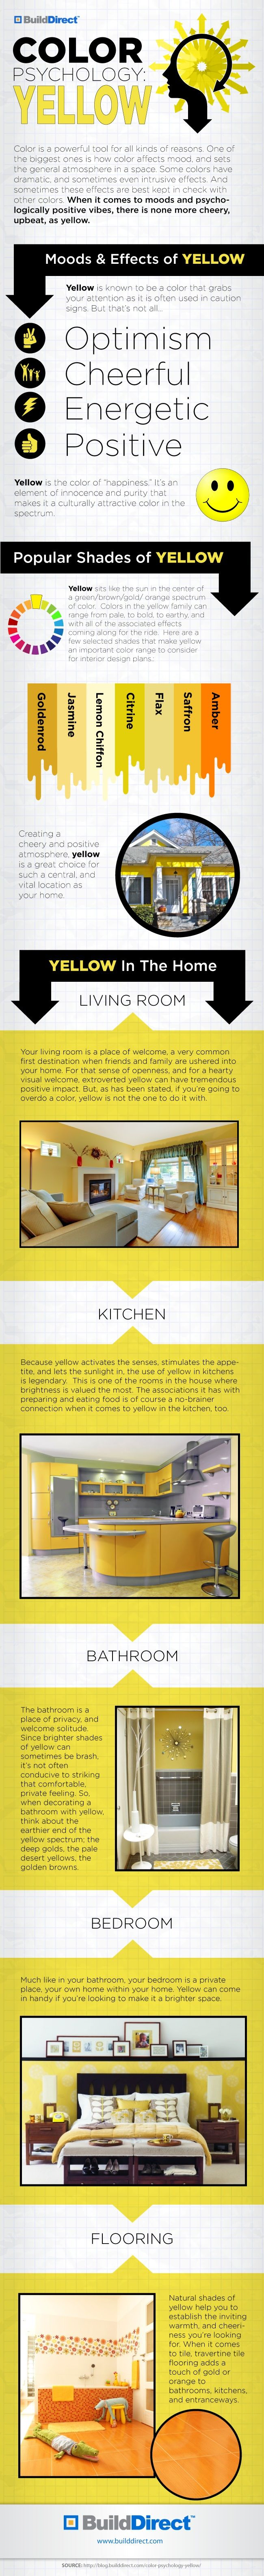 207 best Interior images on Pinterest | Creative ideas, For the home ...